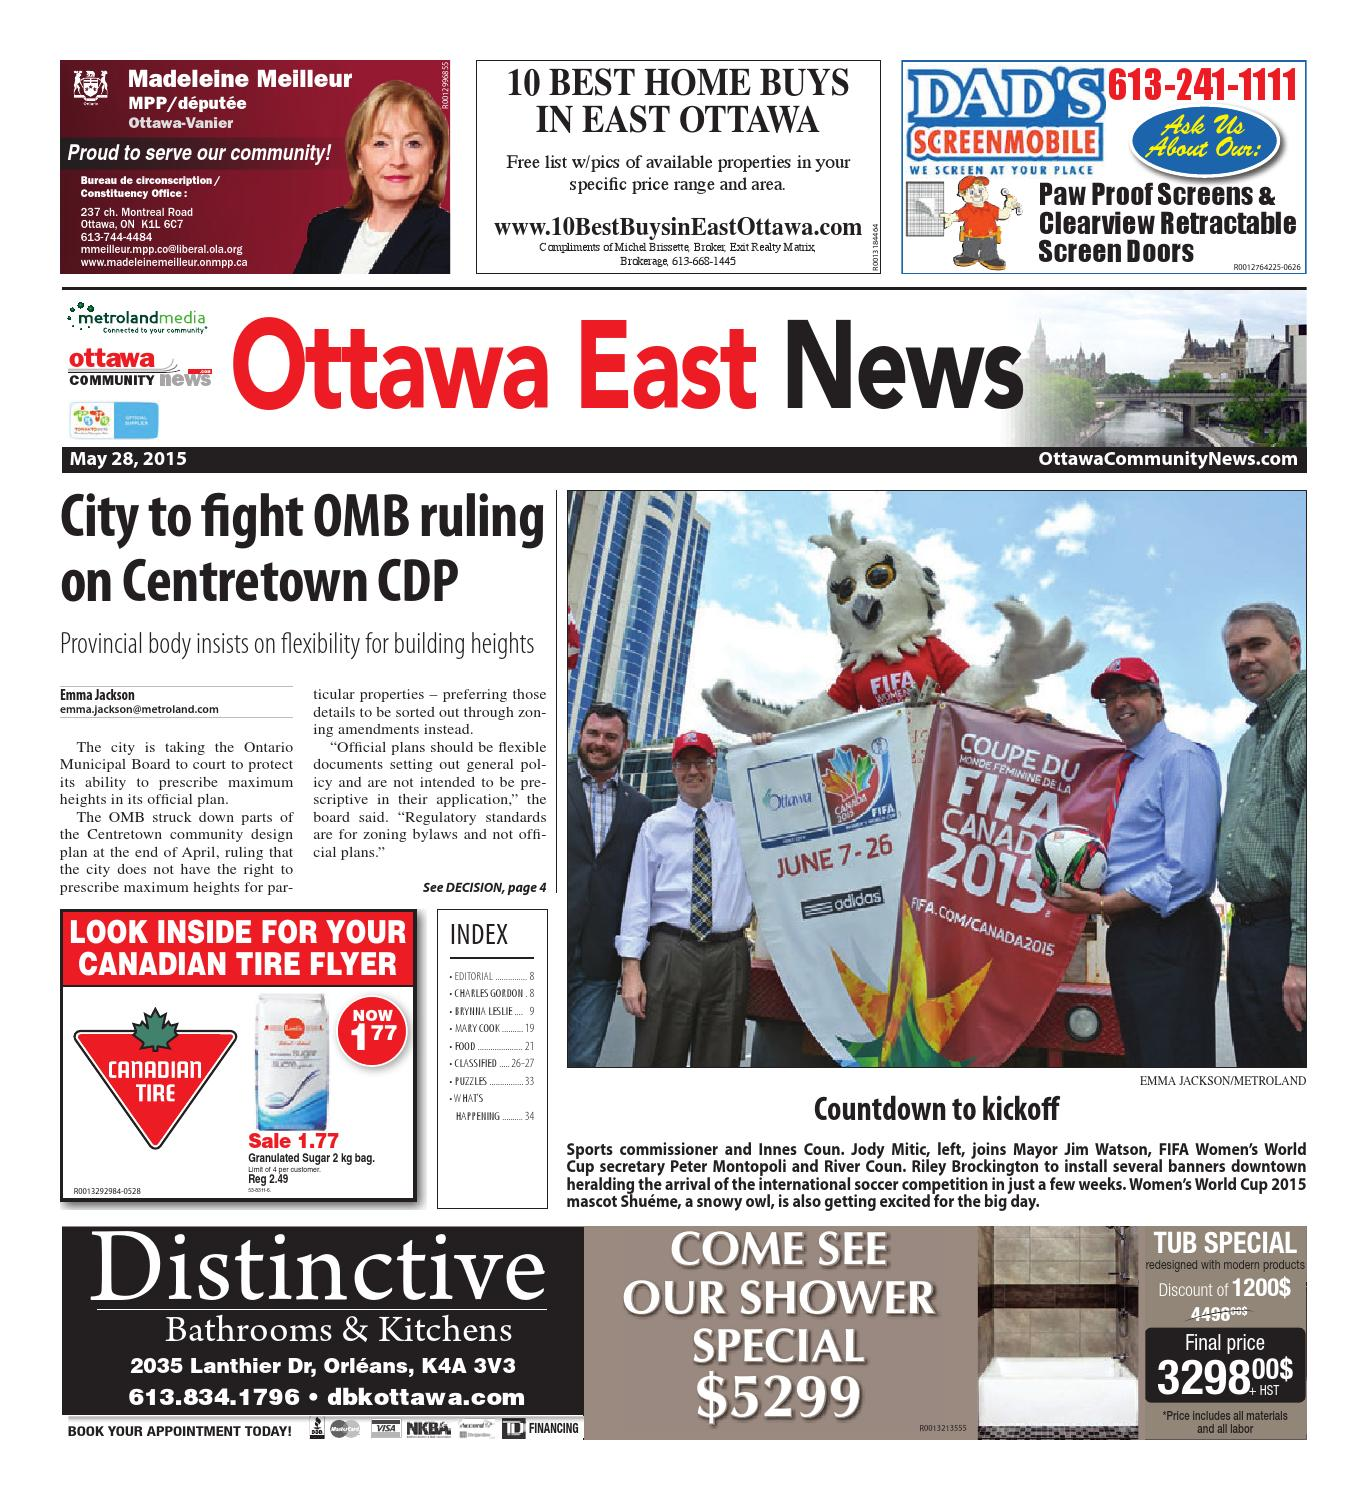 Ottawaeastnews052815 by Metroland East - Ottawa East News - issuu